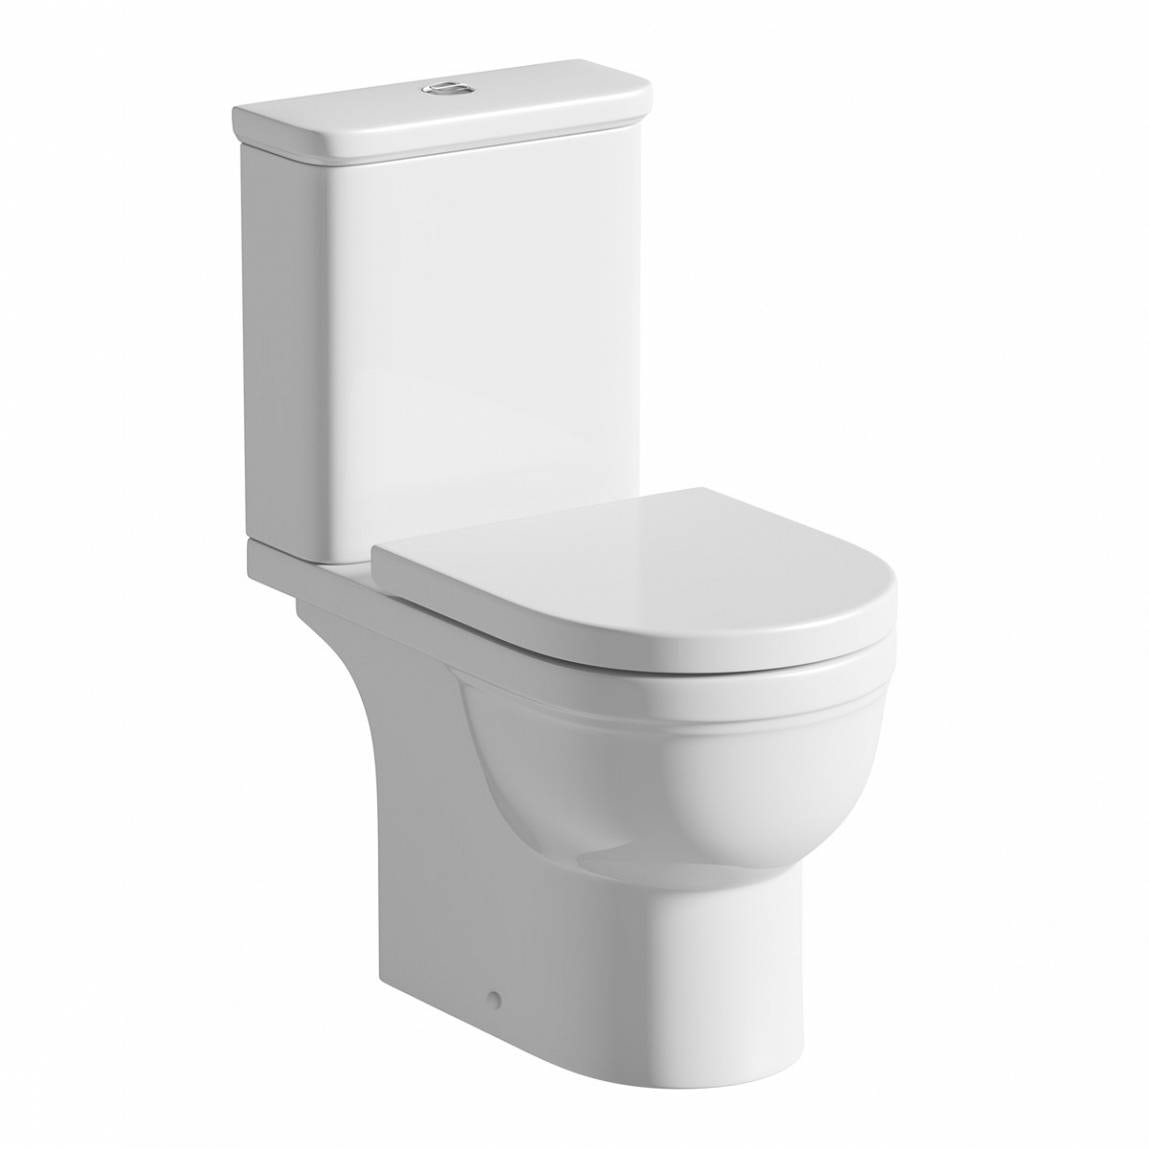 Deco close coupled toilet with soft close toilet seat for Wc deco modern